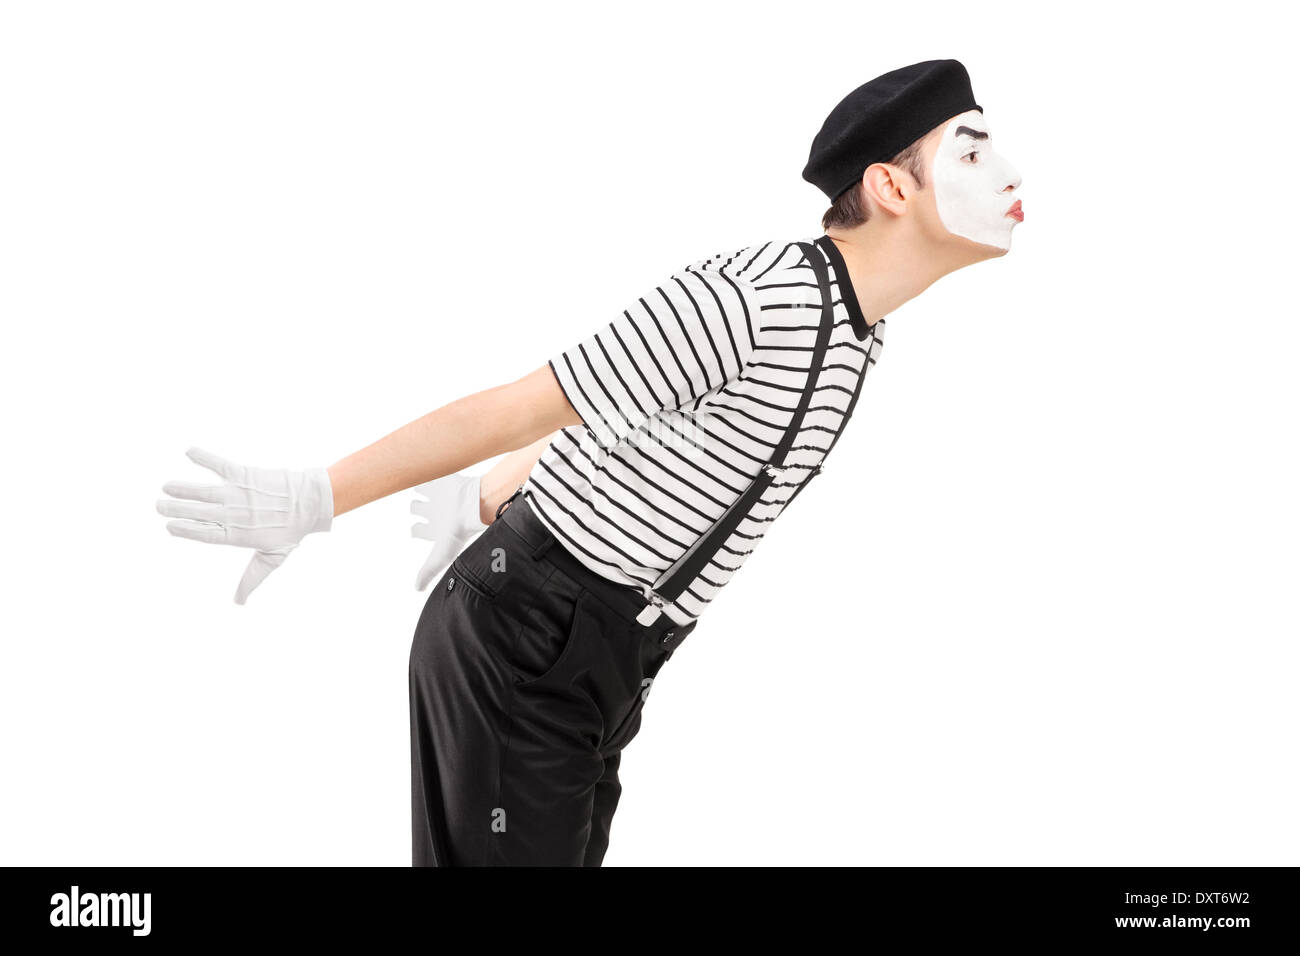 Male mime artist gesture kissing - Stock Image